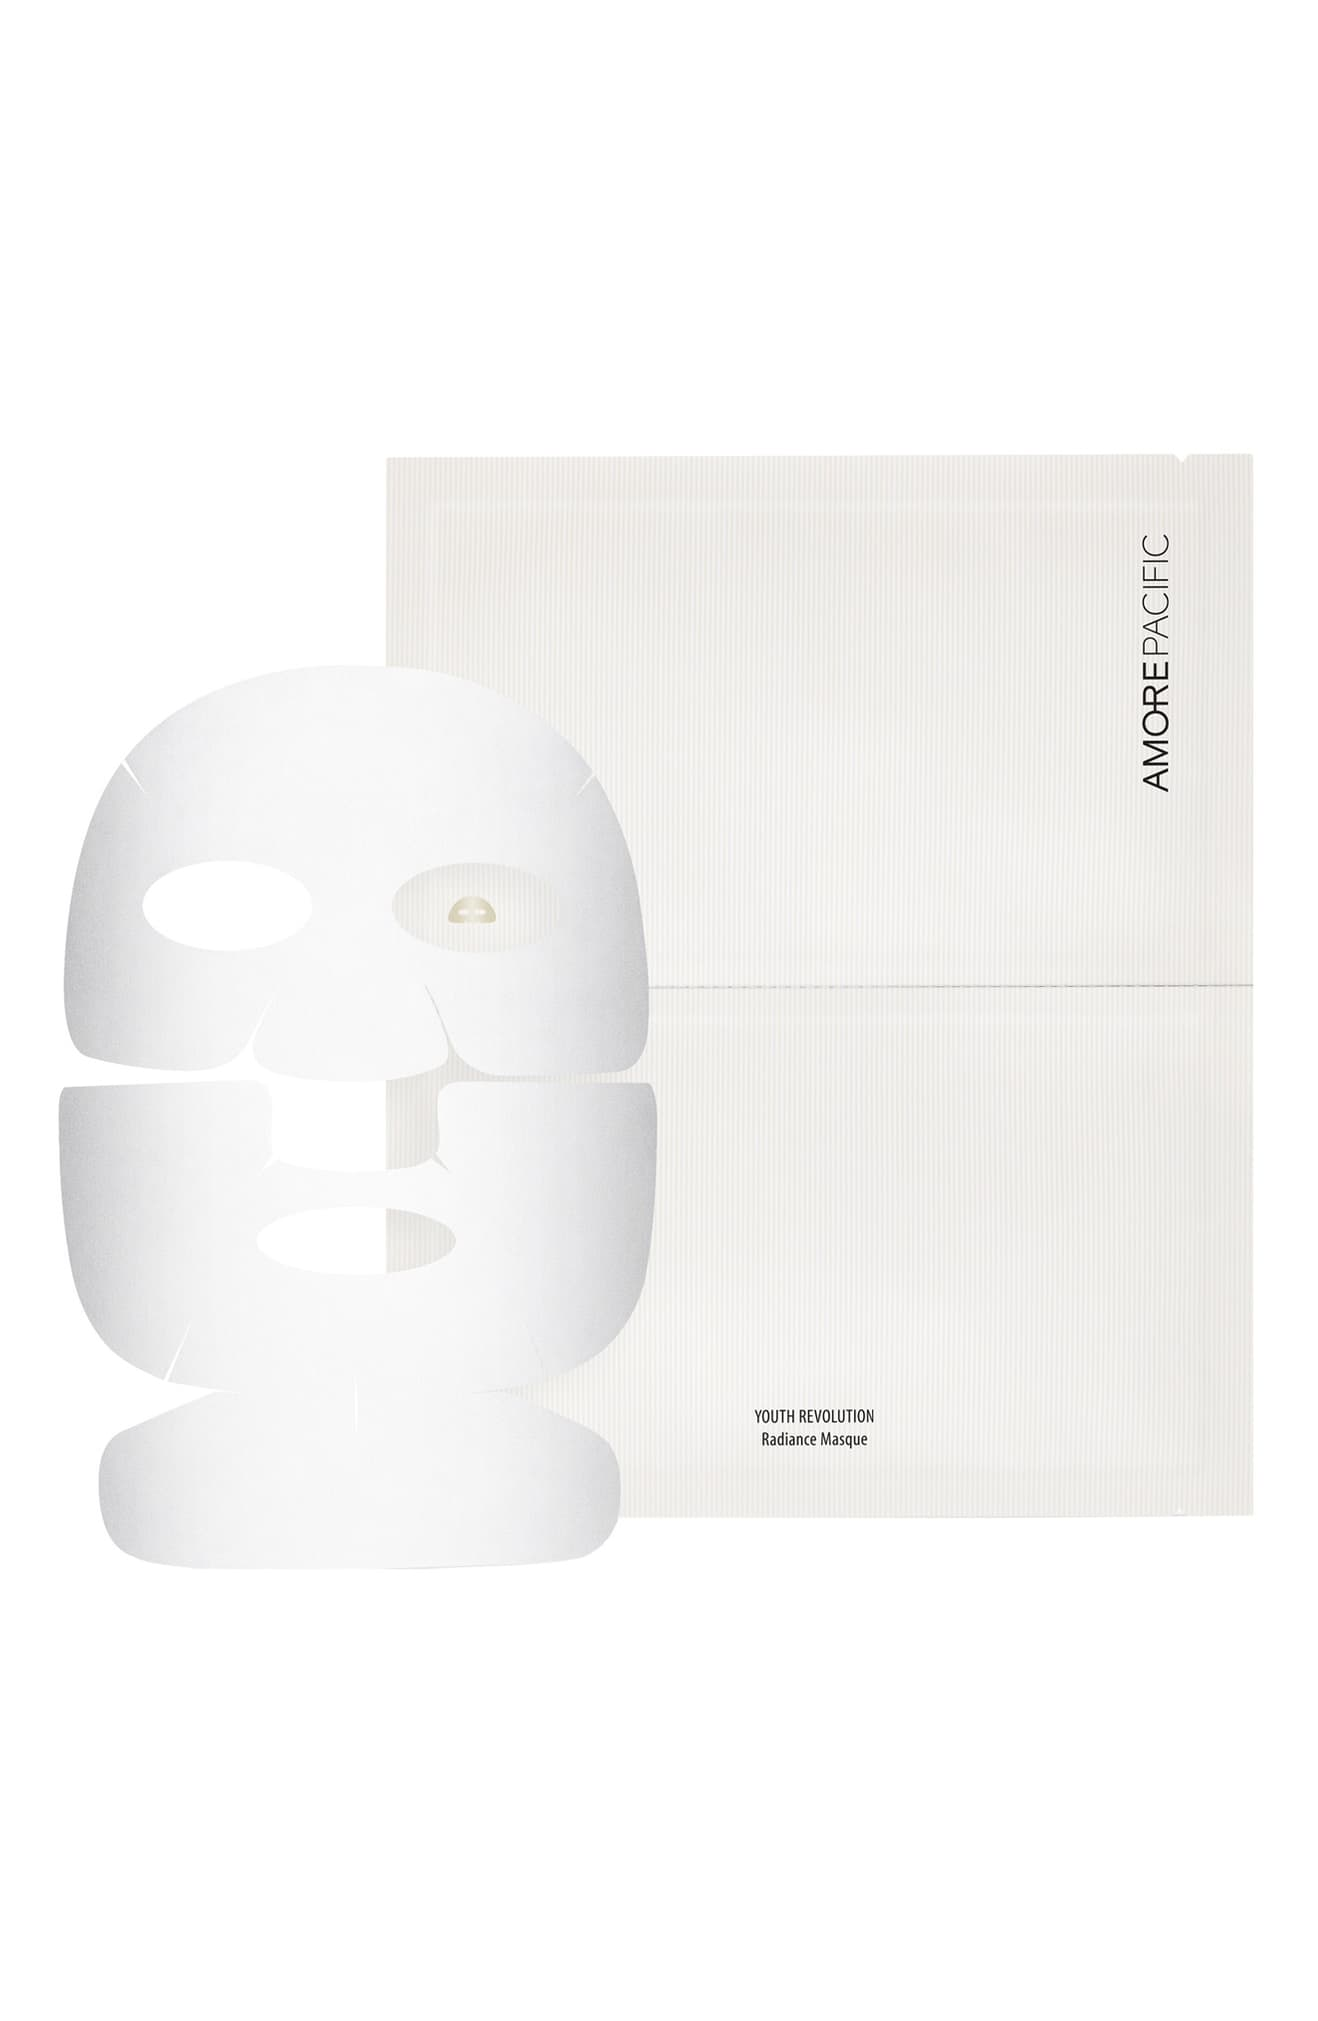 AMOREPACIFIC Youth Revolution Radiance Sheet Masques